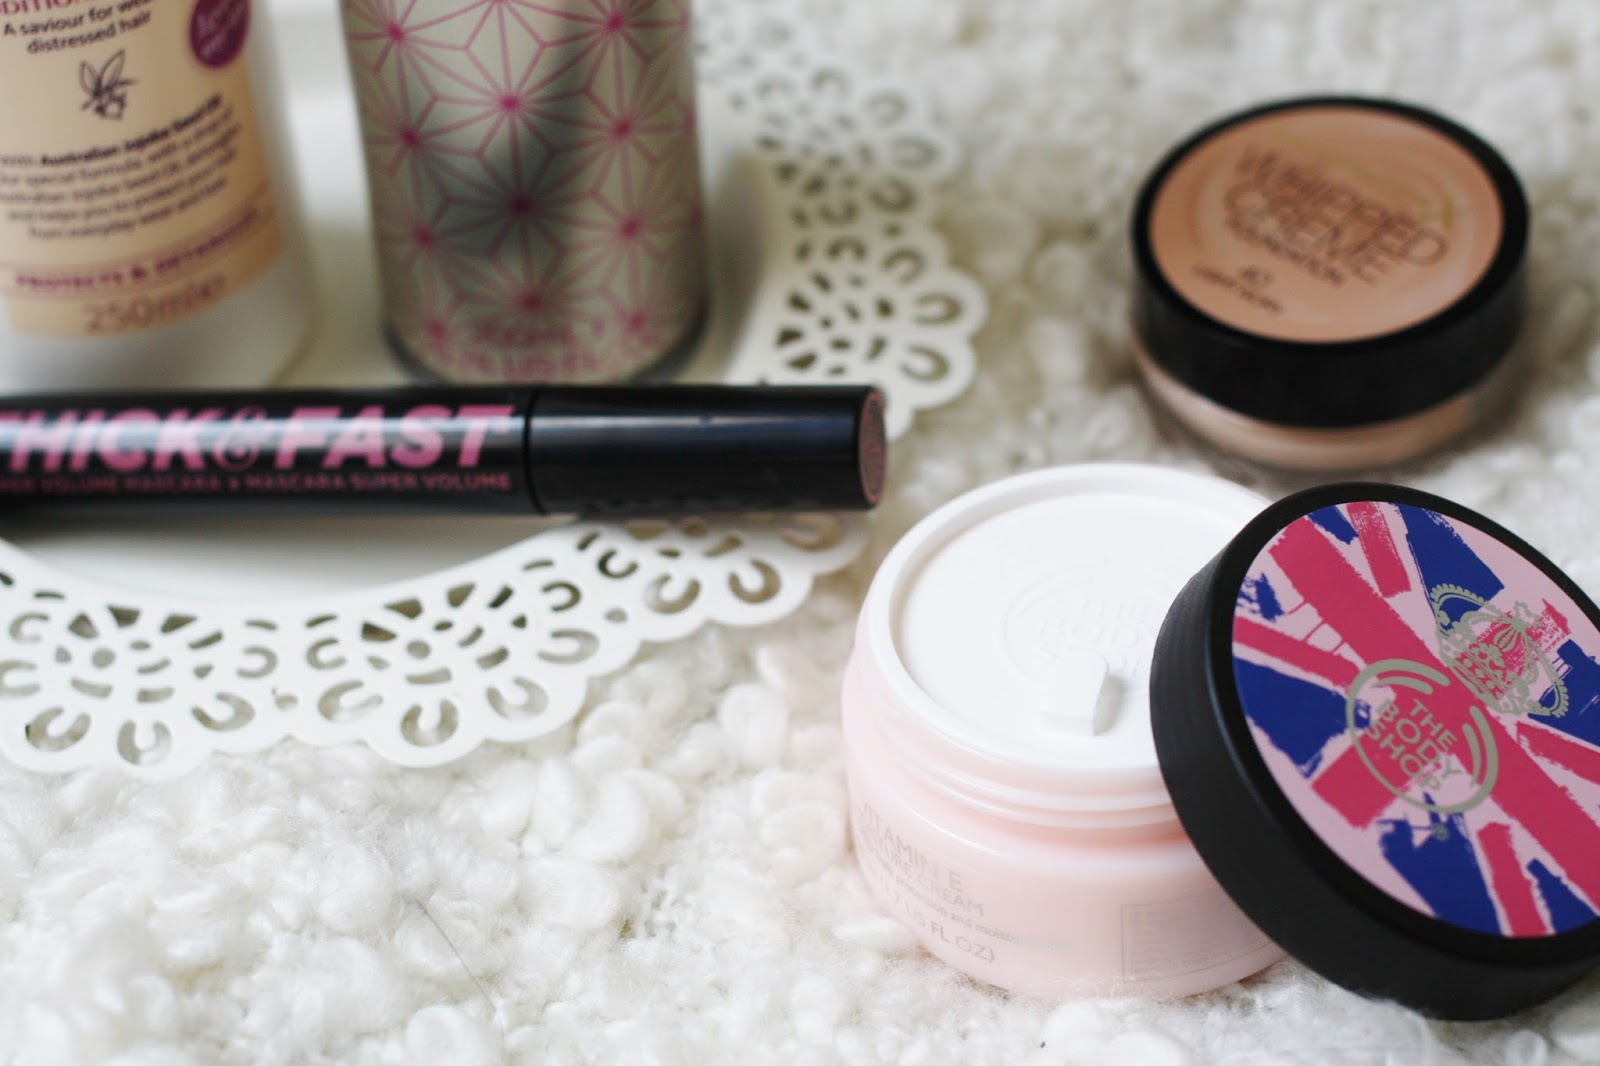 Colab Aussie Soap and Glory Maxfactor The Body Shop Favourites from the High Street